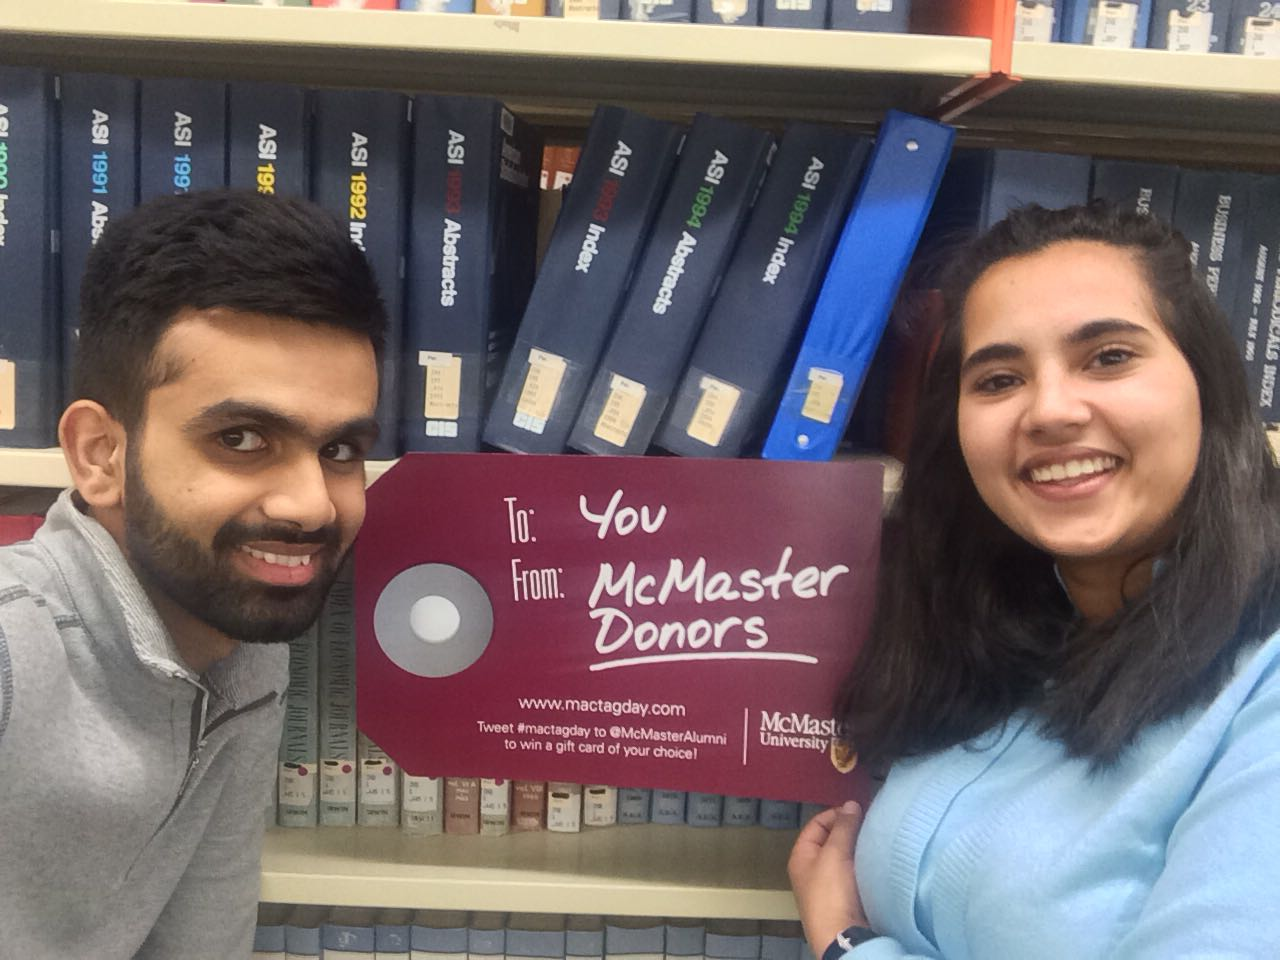 Thank you @McMasterAlumni for amazing facilities, including the study spaces in @MacMillsLibrary!!! #MacTagDay #ThankfulThursday https://t.co/CLjPdIgrZ0